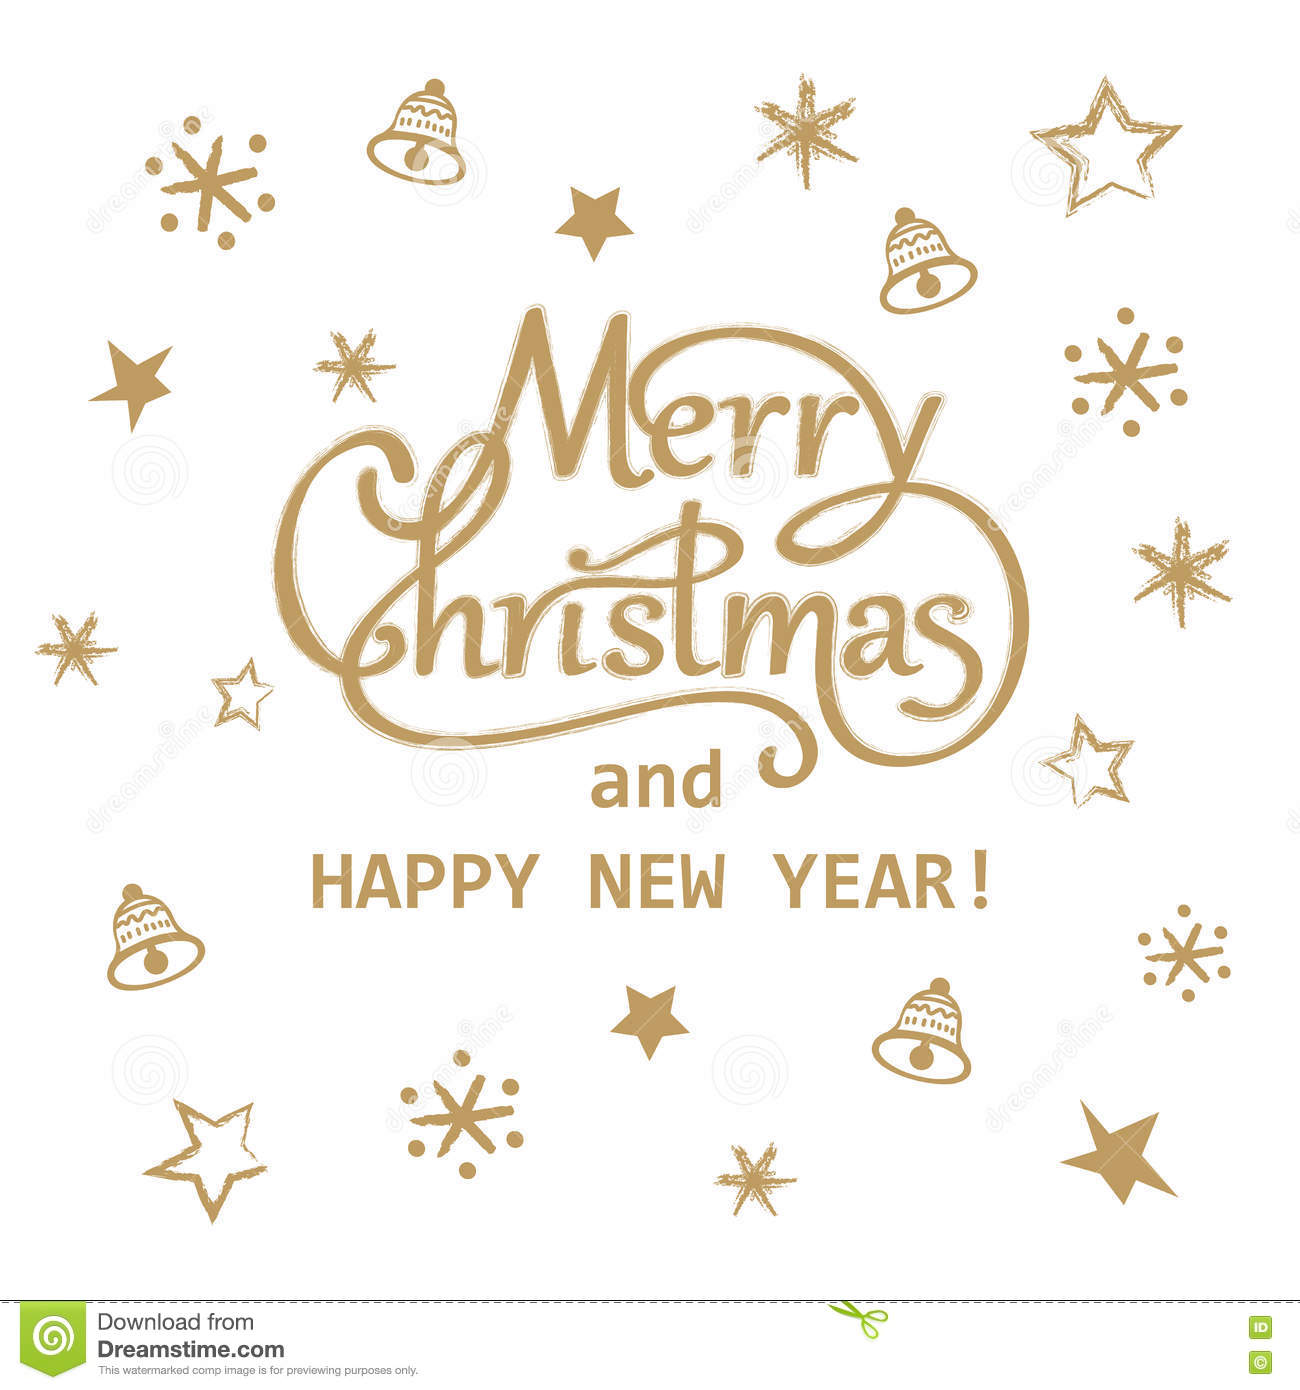 merry christmas and happy new year golden hand drawn lettering greeting card design